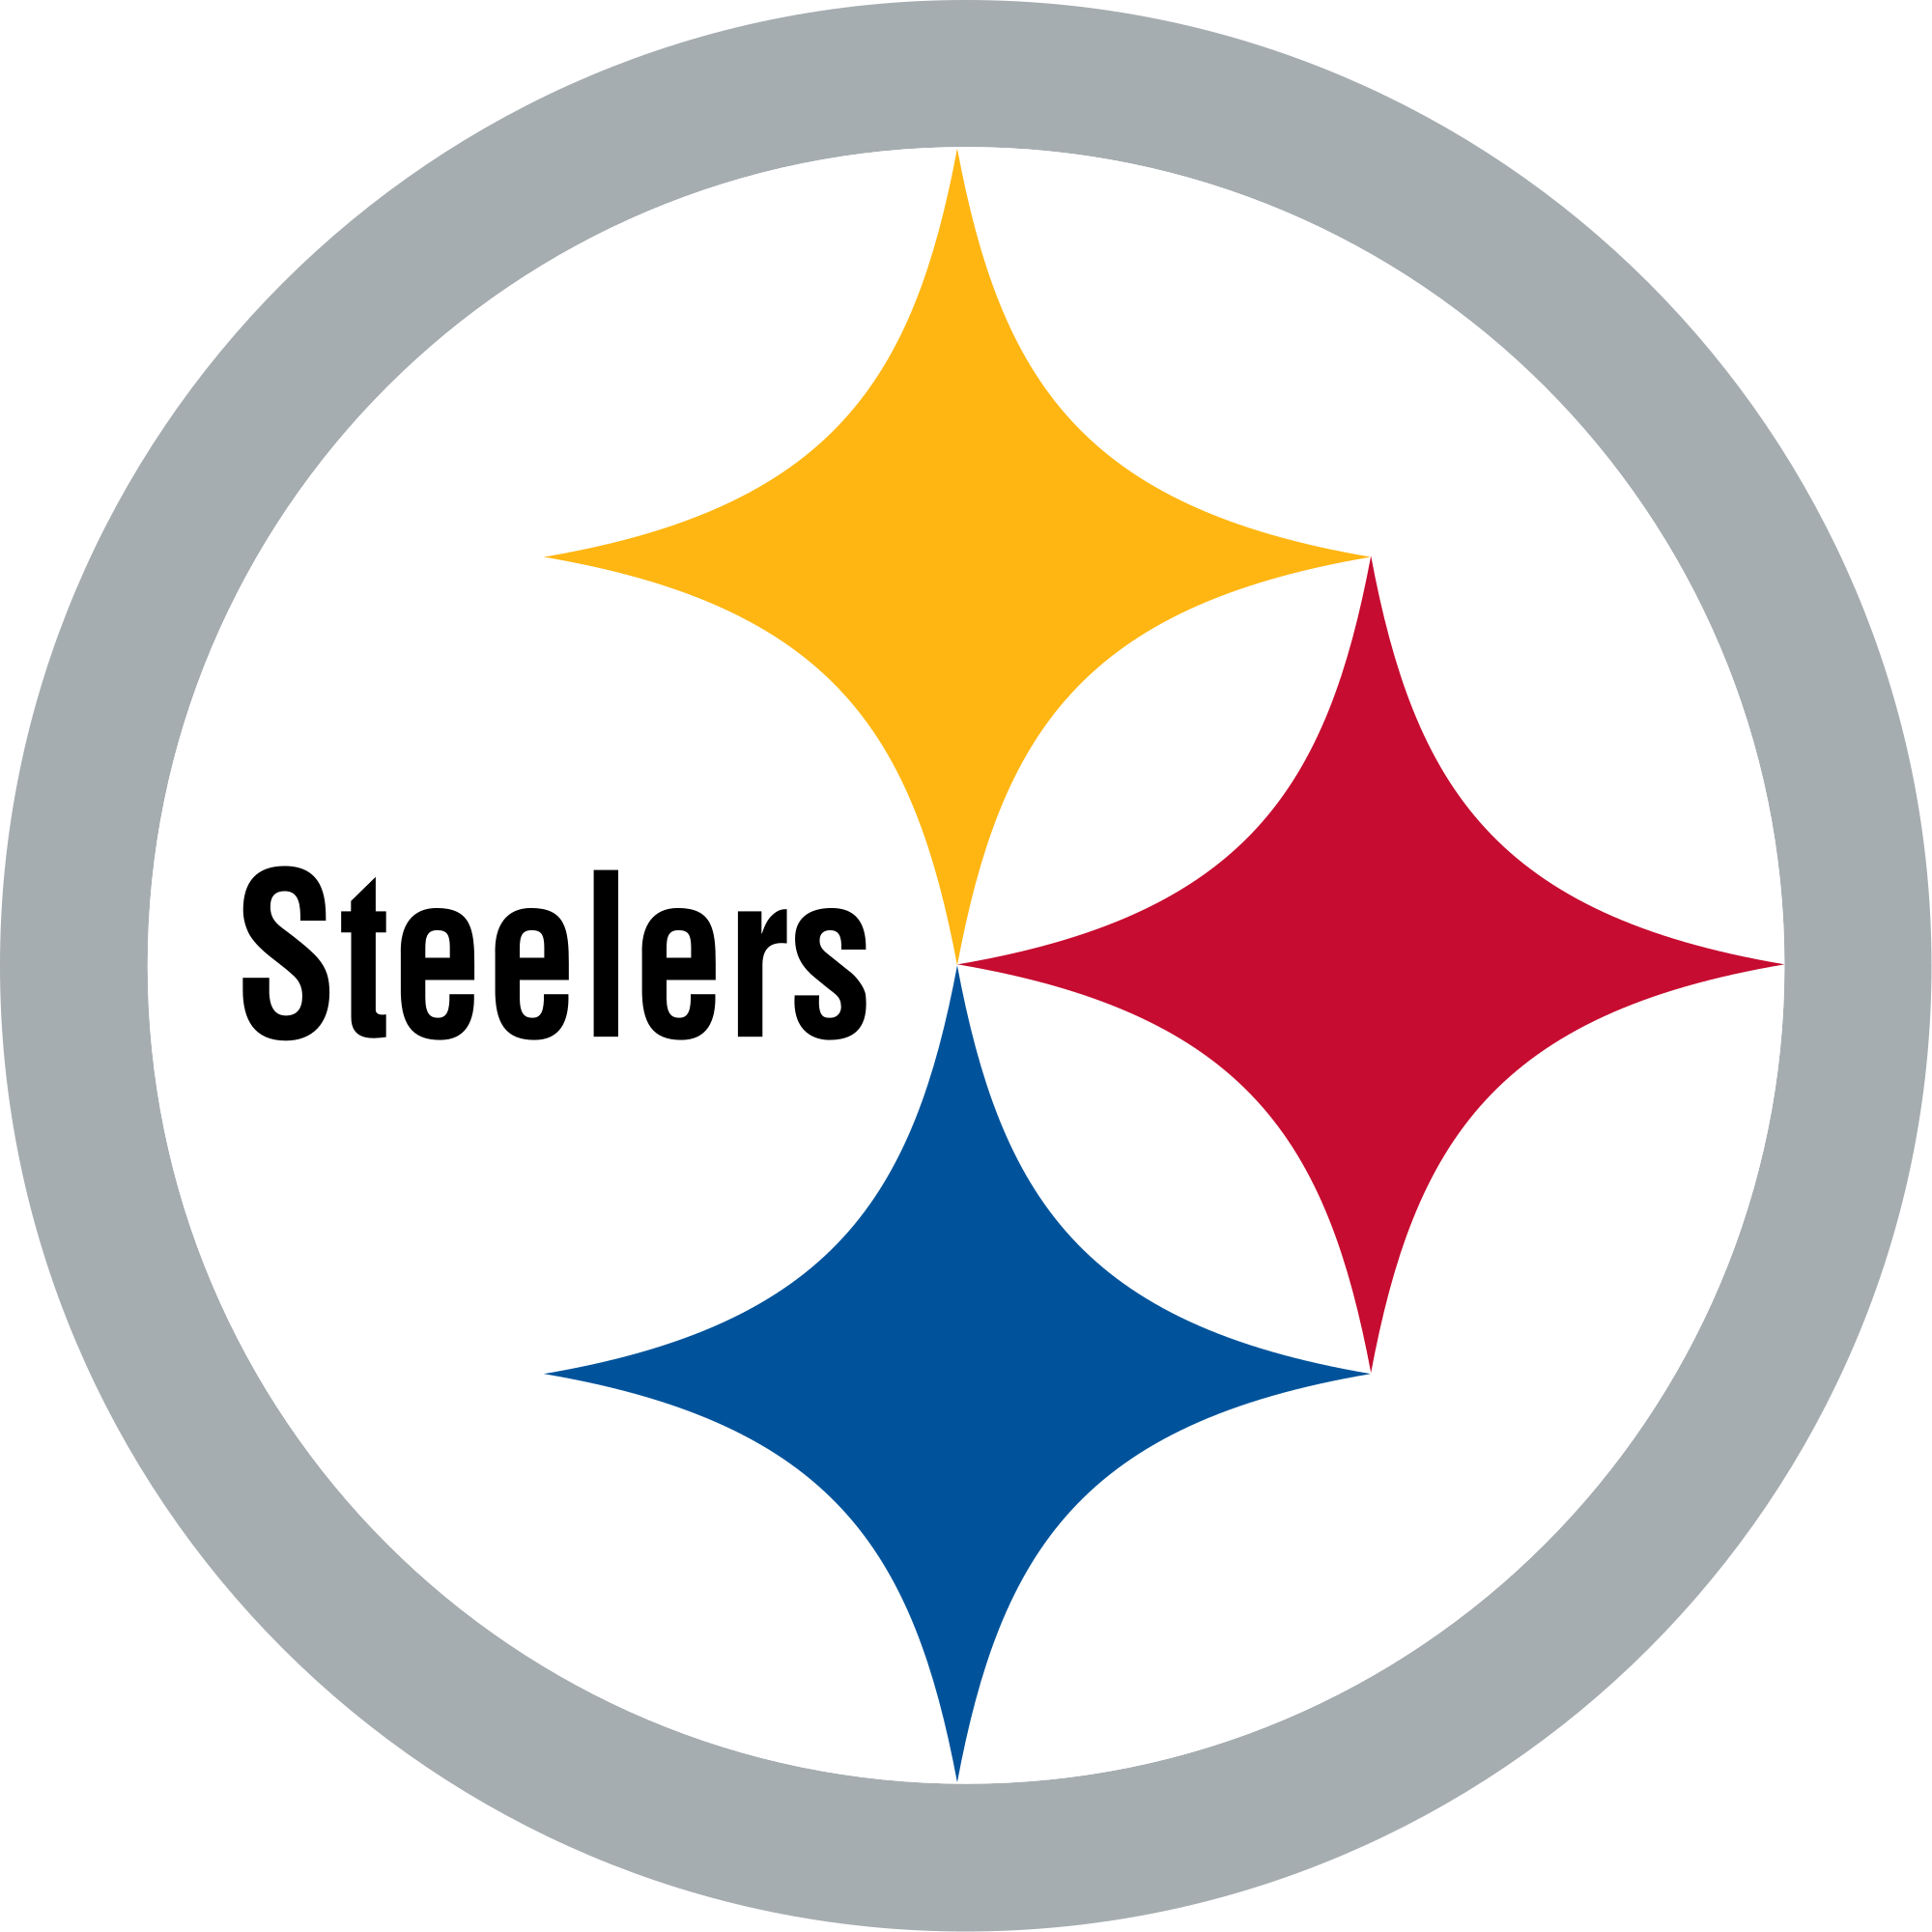 steelers logo.png